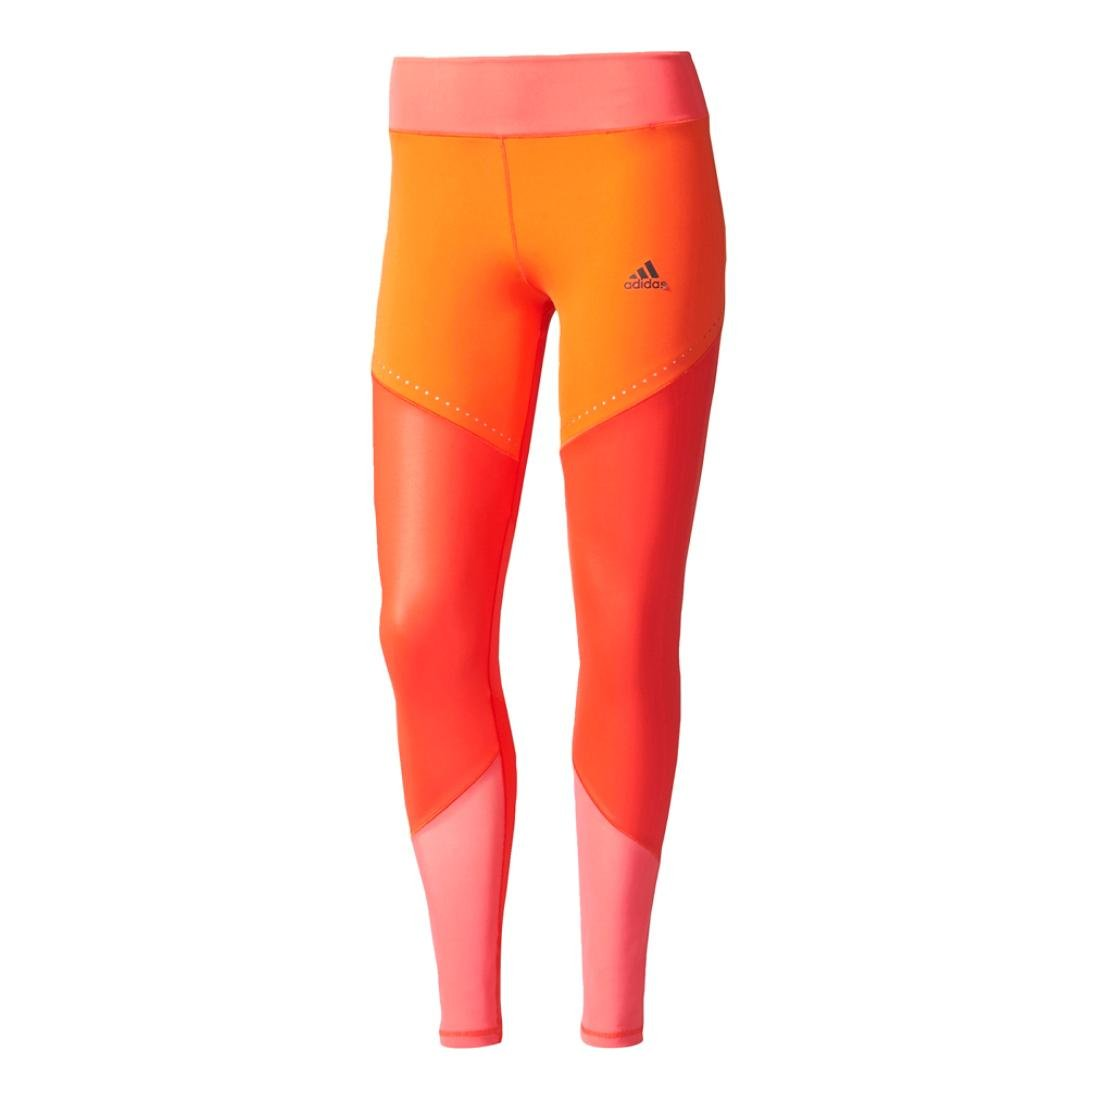 adidas Women's Training Wow Drop Tights, Core Red/Core Pink, Small by adidas (Image #1)